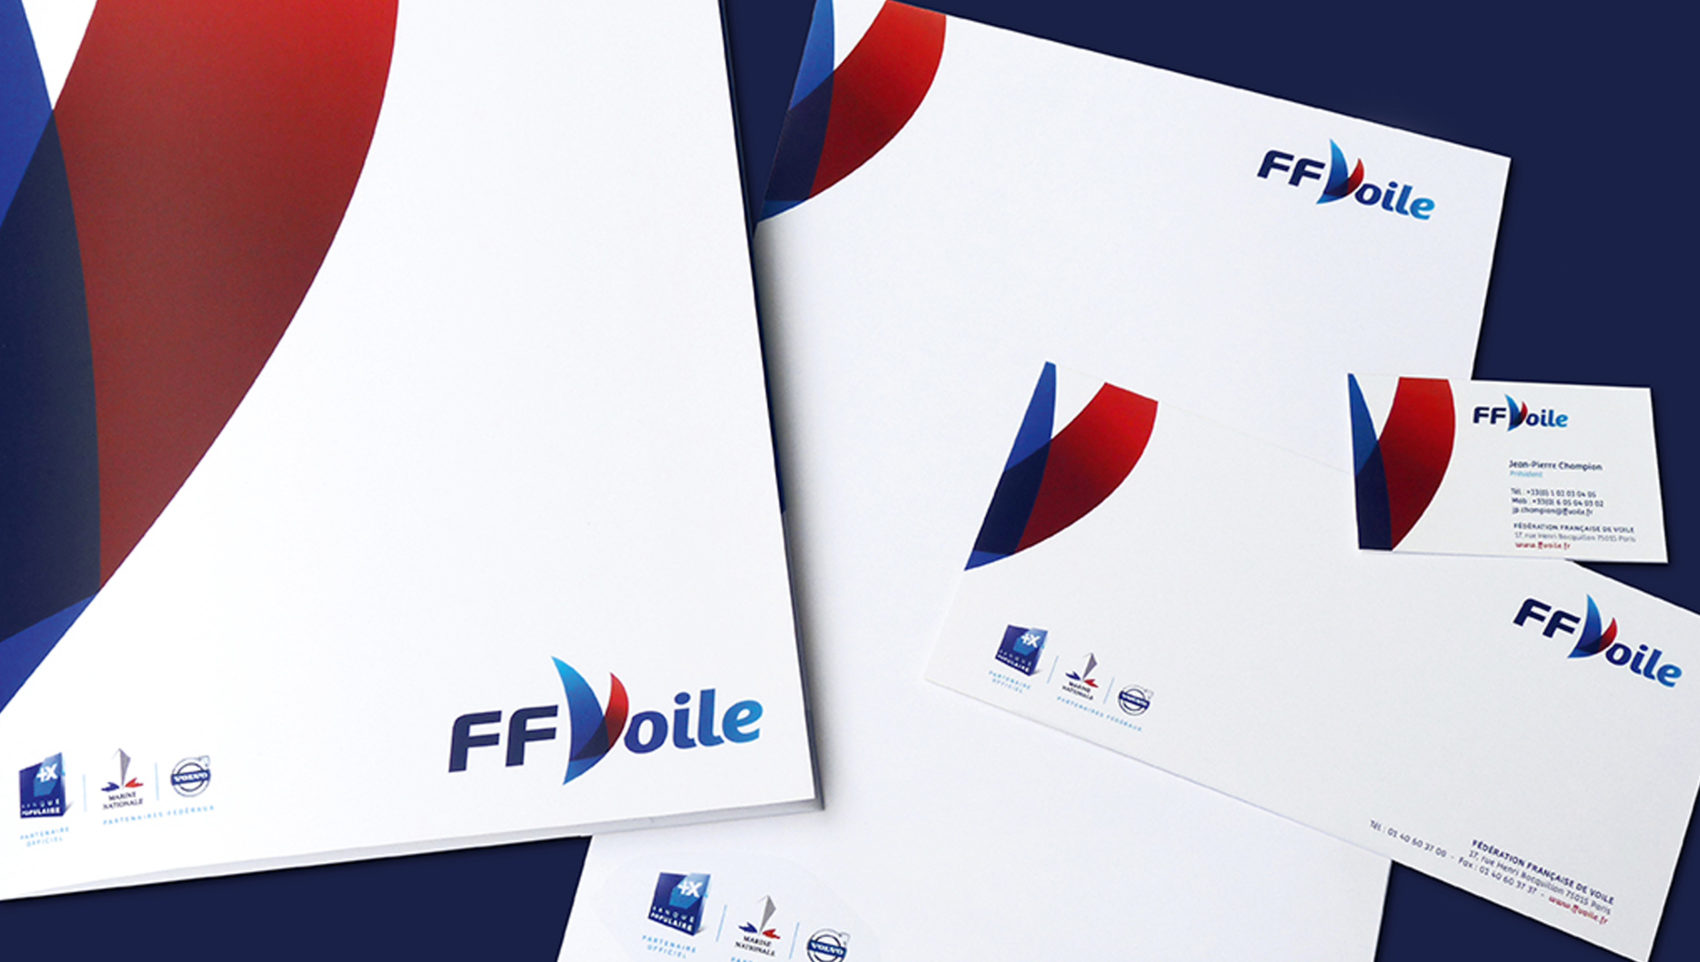 Projet_project_realisation_02_Federation_Francaise_french_Voile